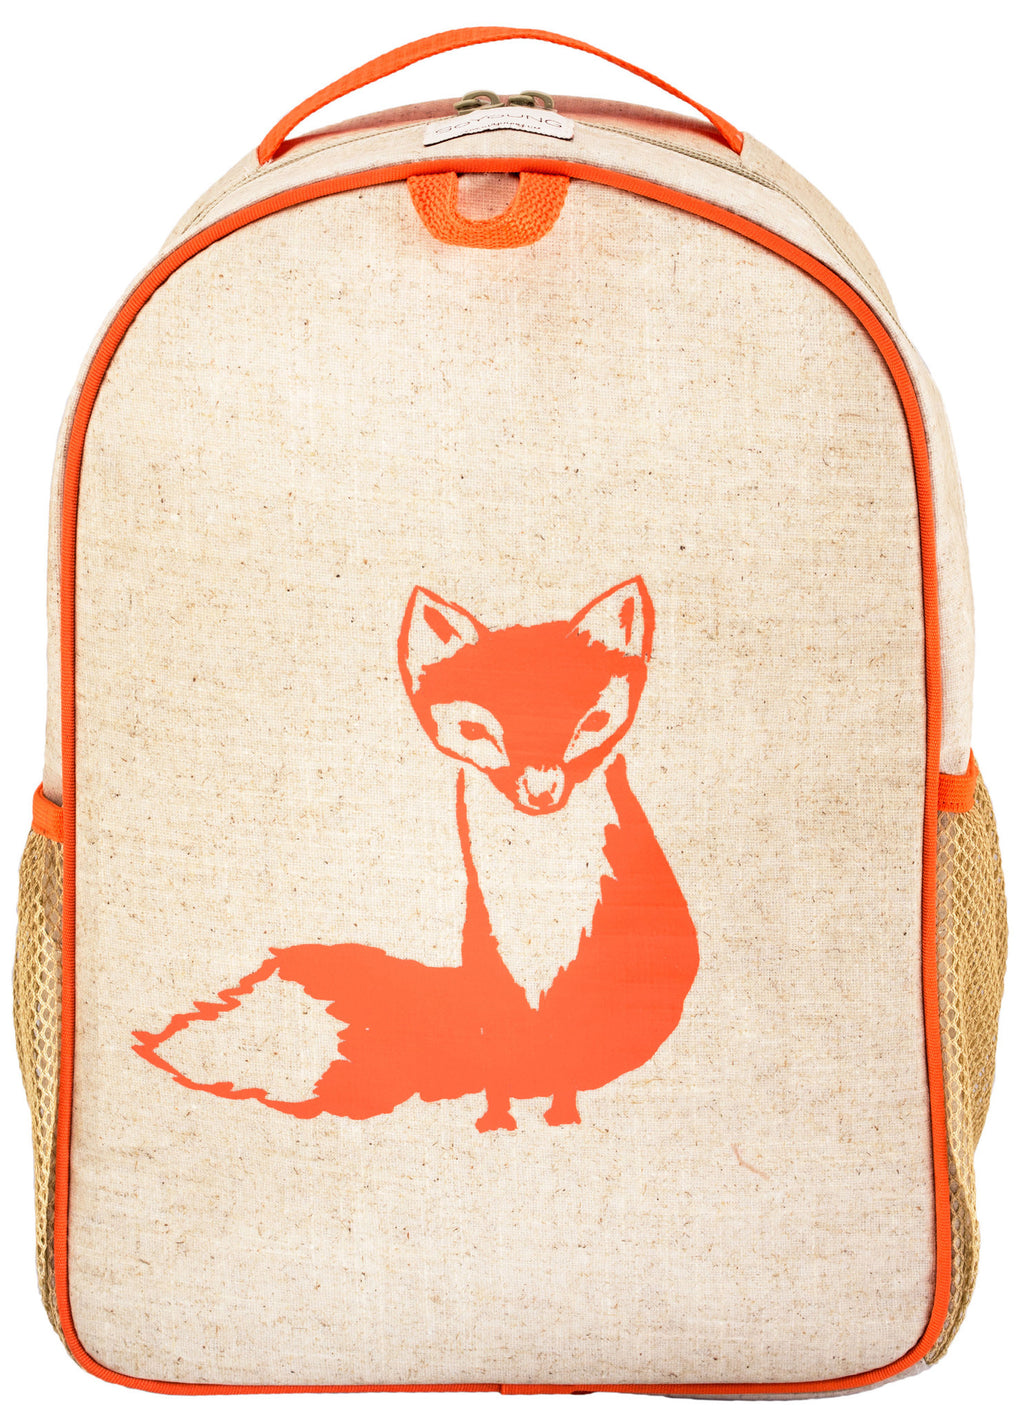 SoYoung Fox Toddler Backpack | kids at home